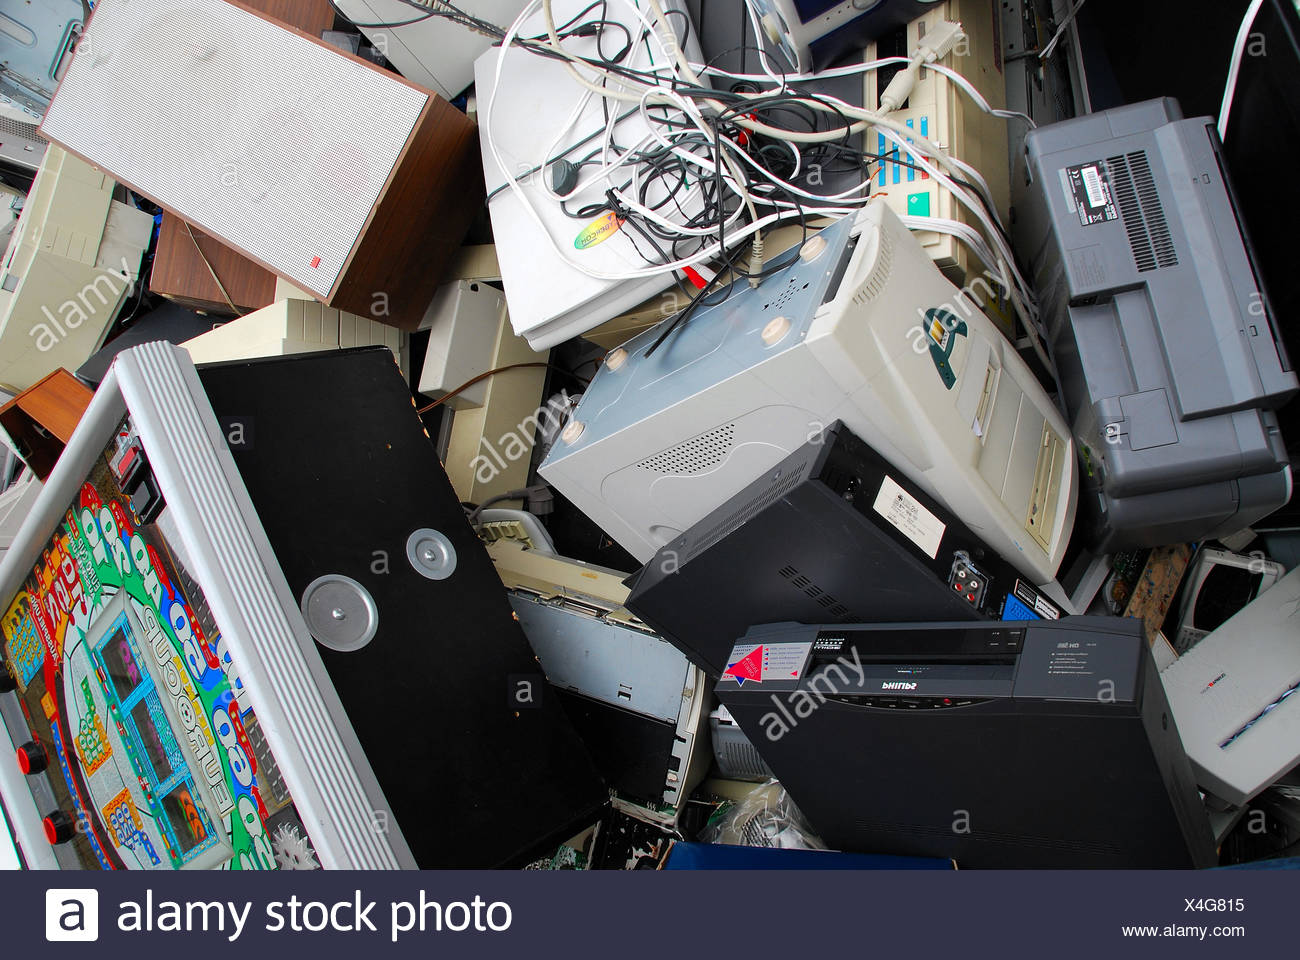 Recycling 080716 5 Stock Photo